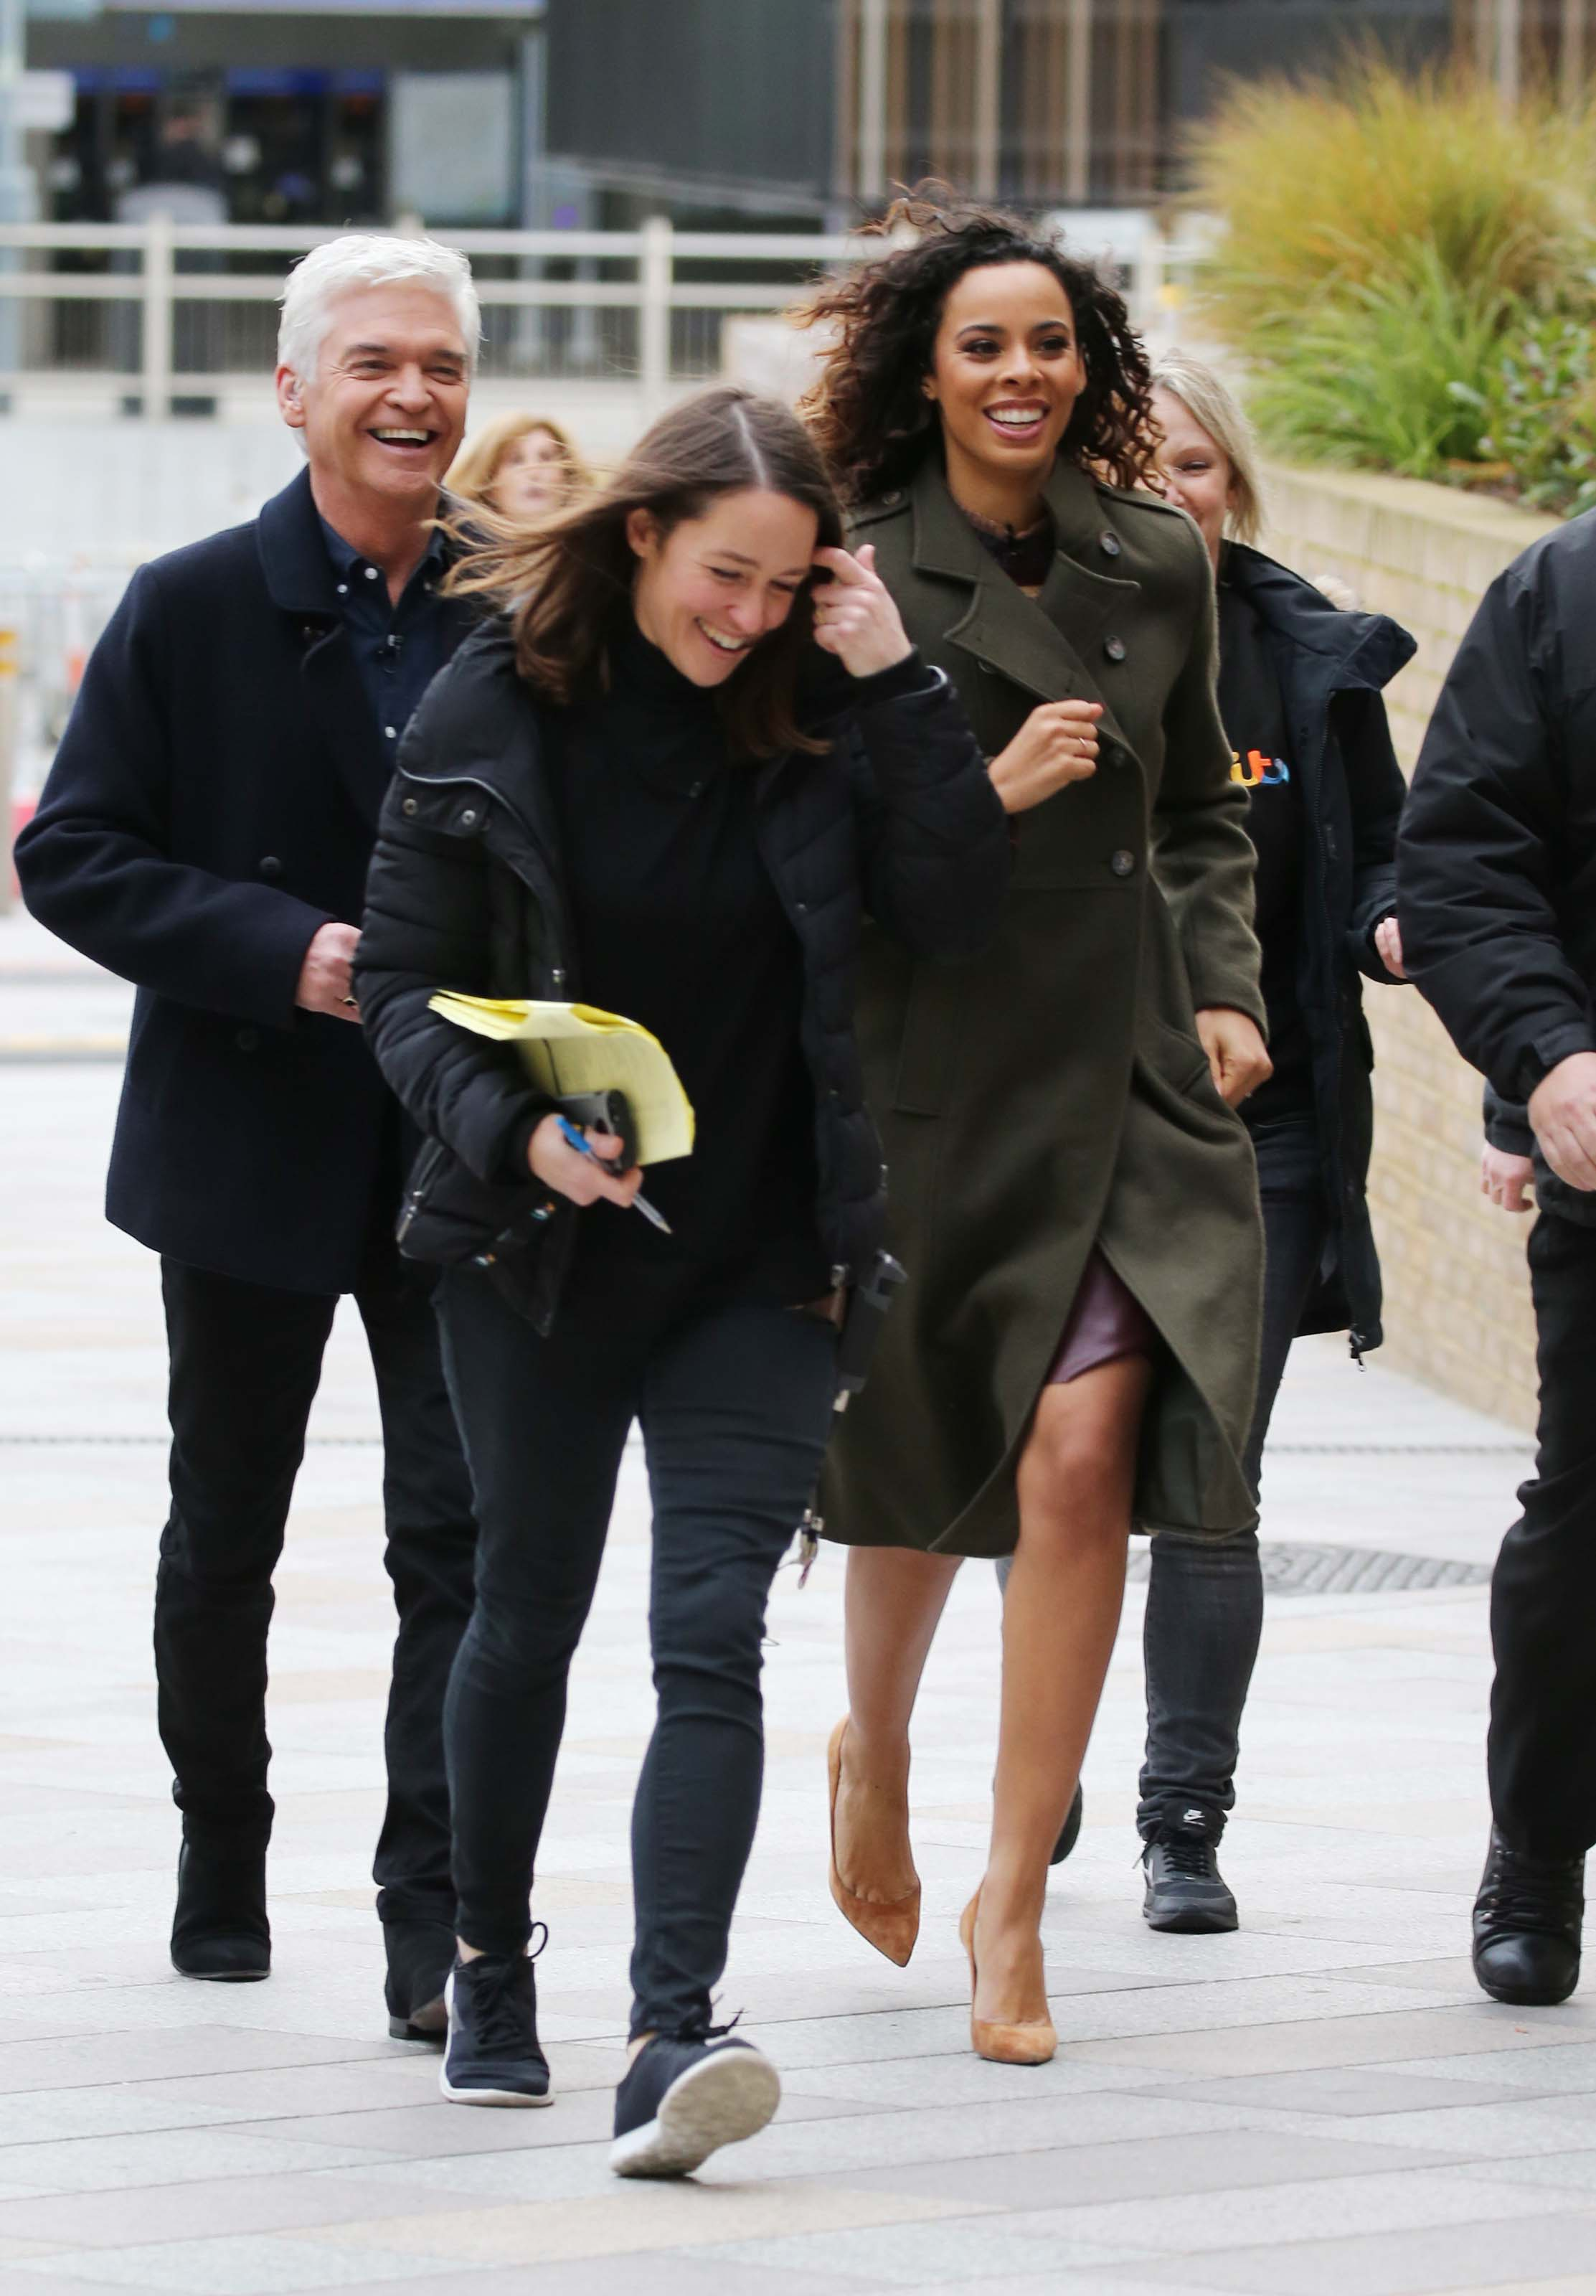 Rochelle Humes filming This Morning Outside ITV Studios